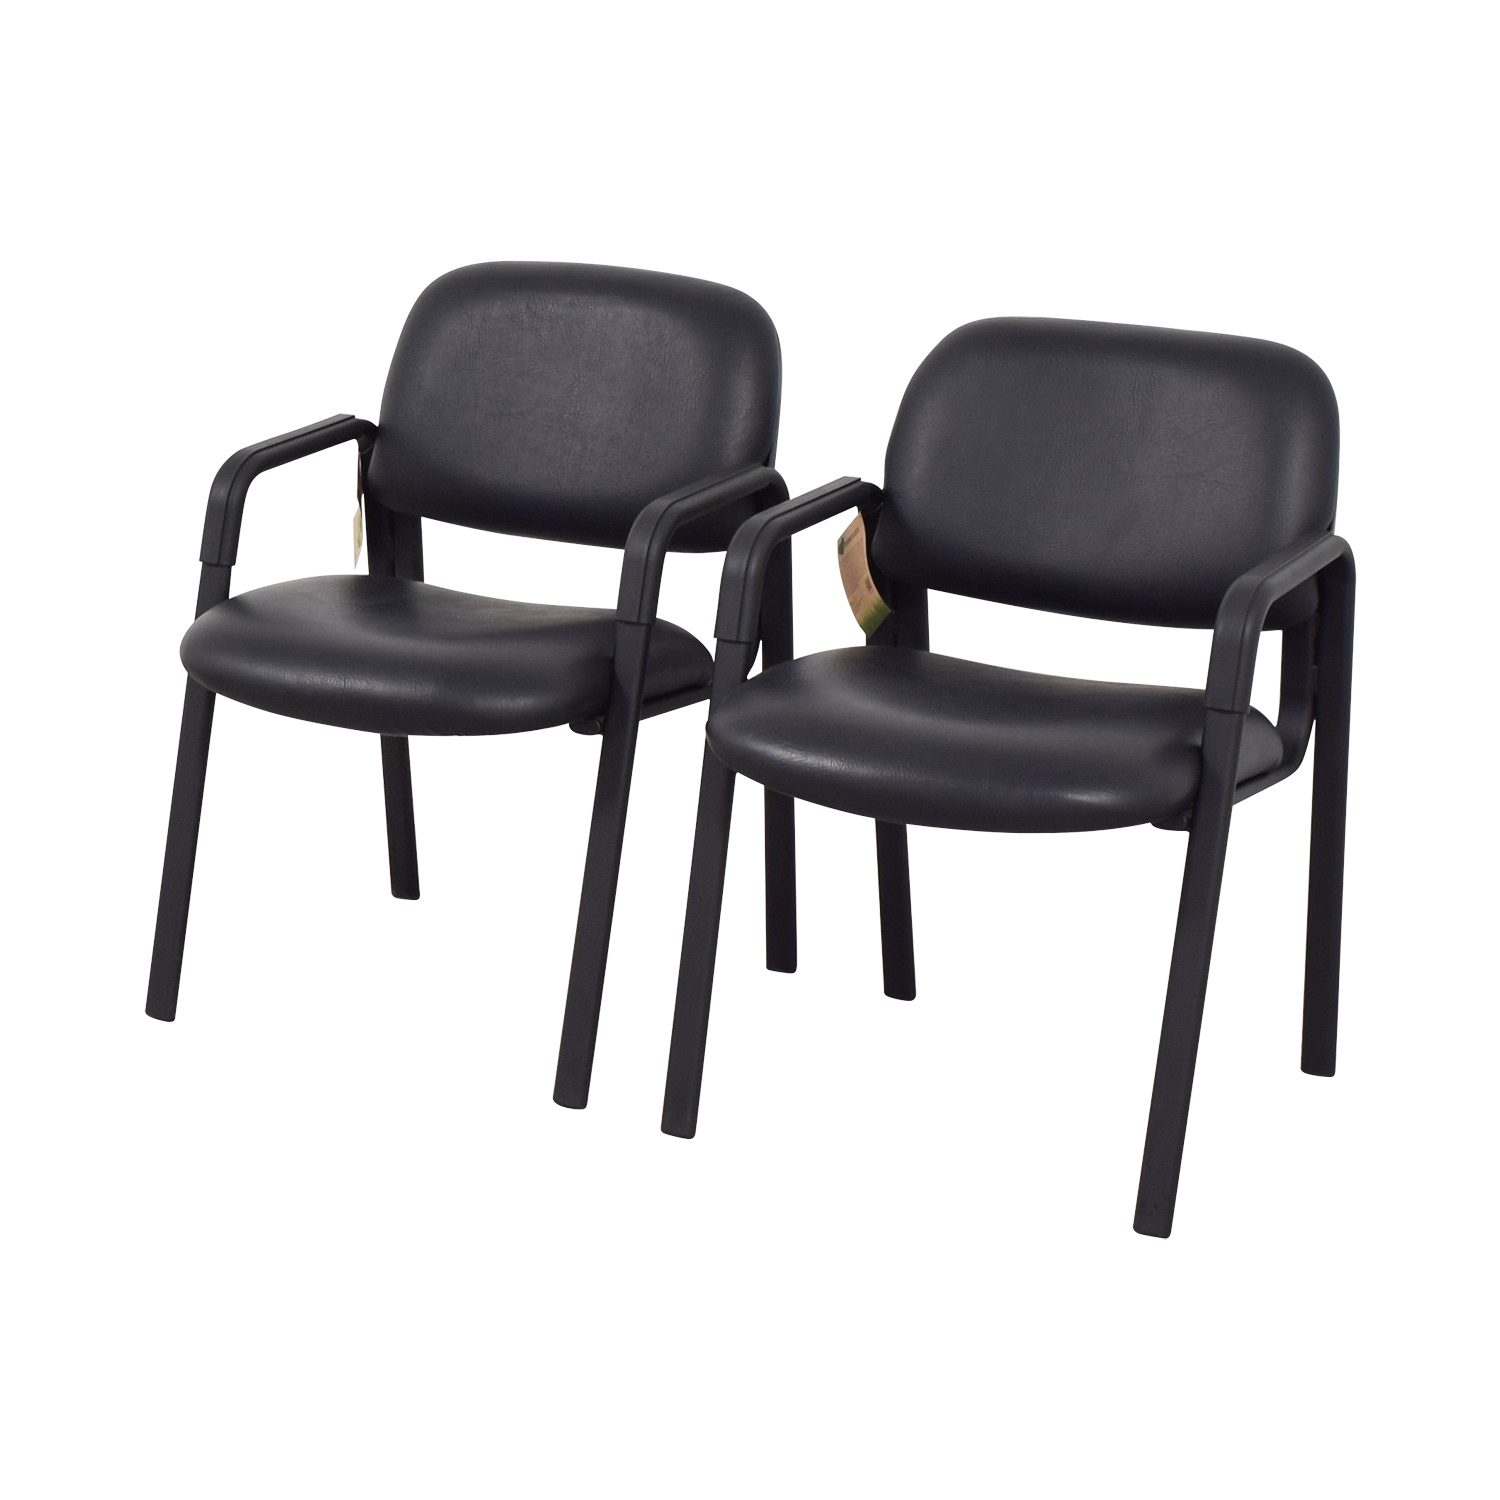 Urth Cava Black Leather Chairs / Chairs